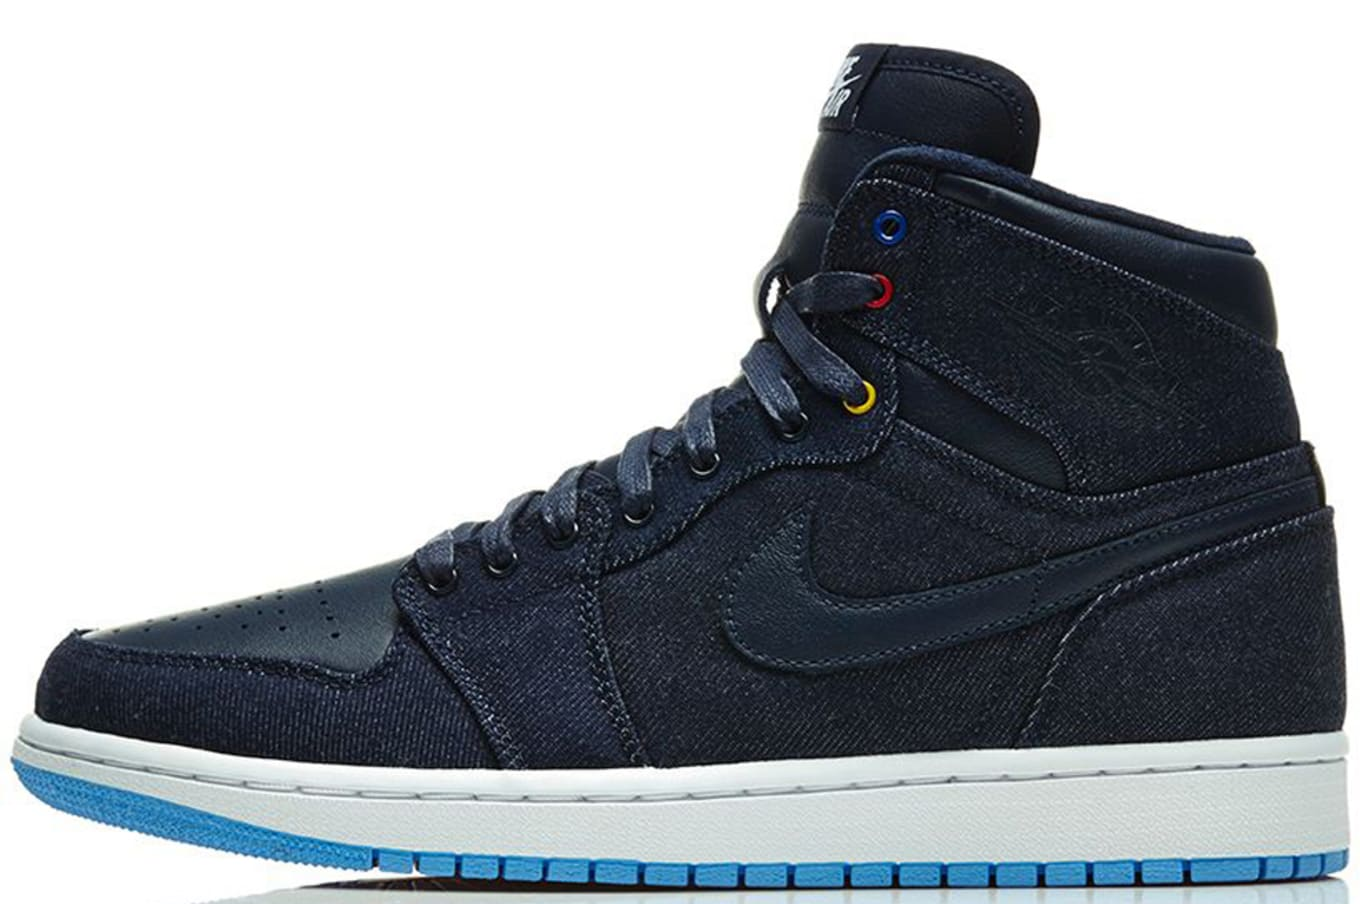 01c9163c200a54 Air Jordan 1 Retro High OG Obsidian White Dark Powder Blue Game Royal